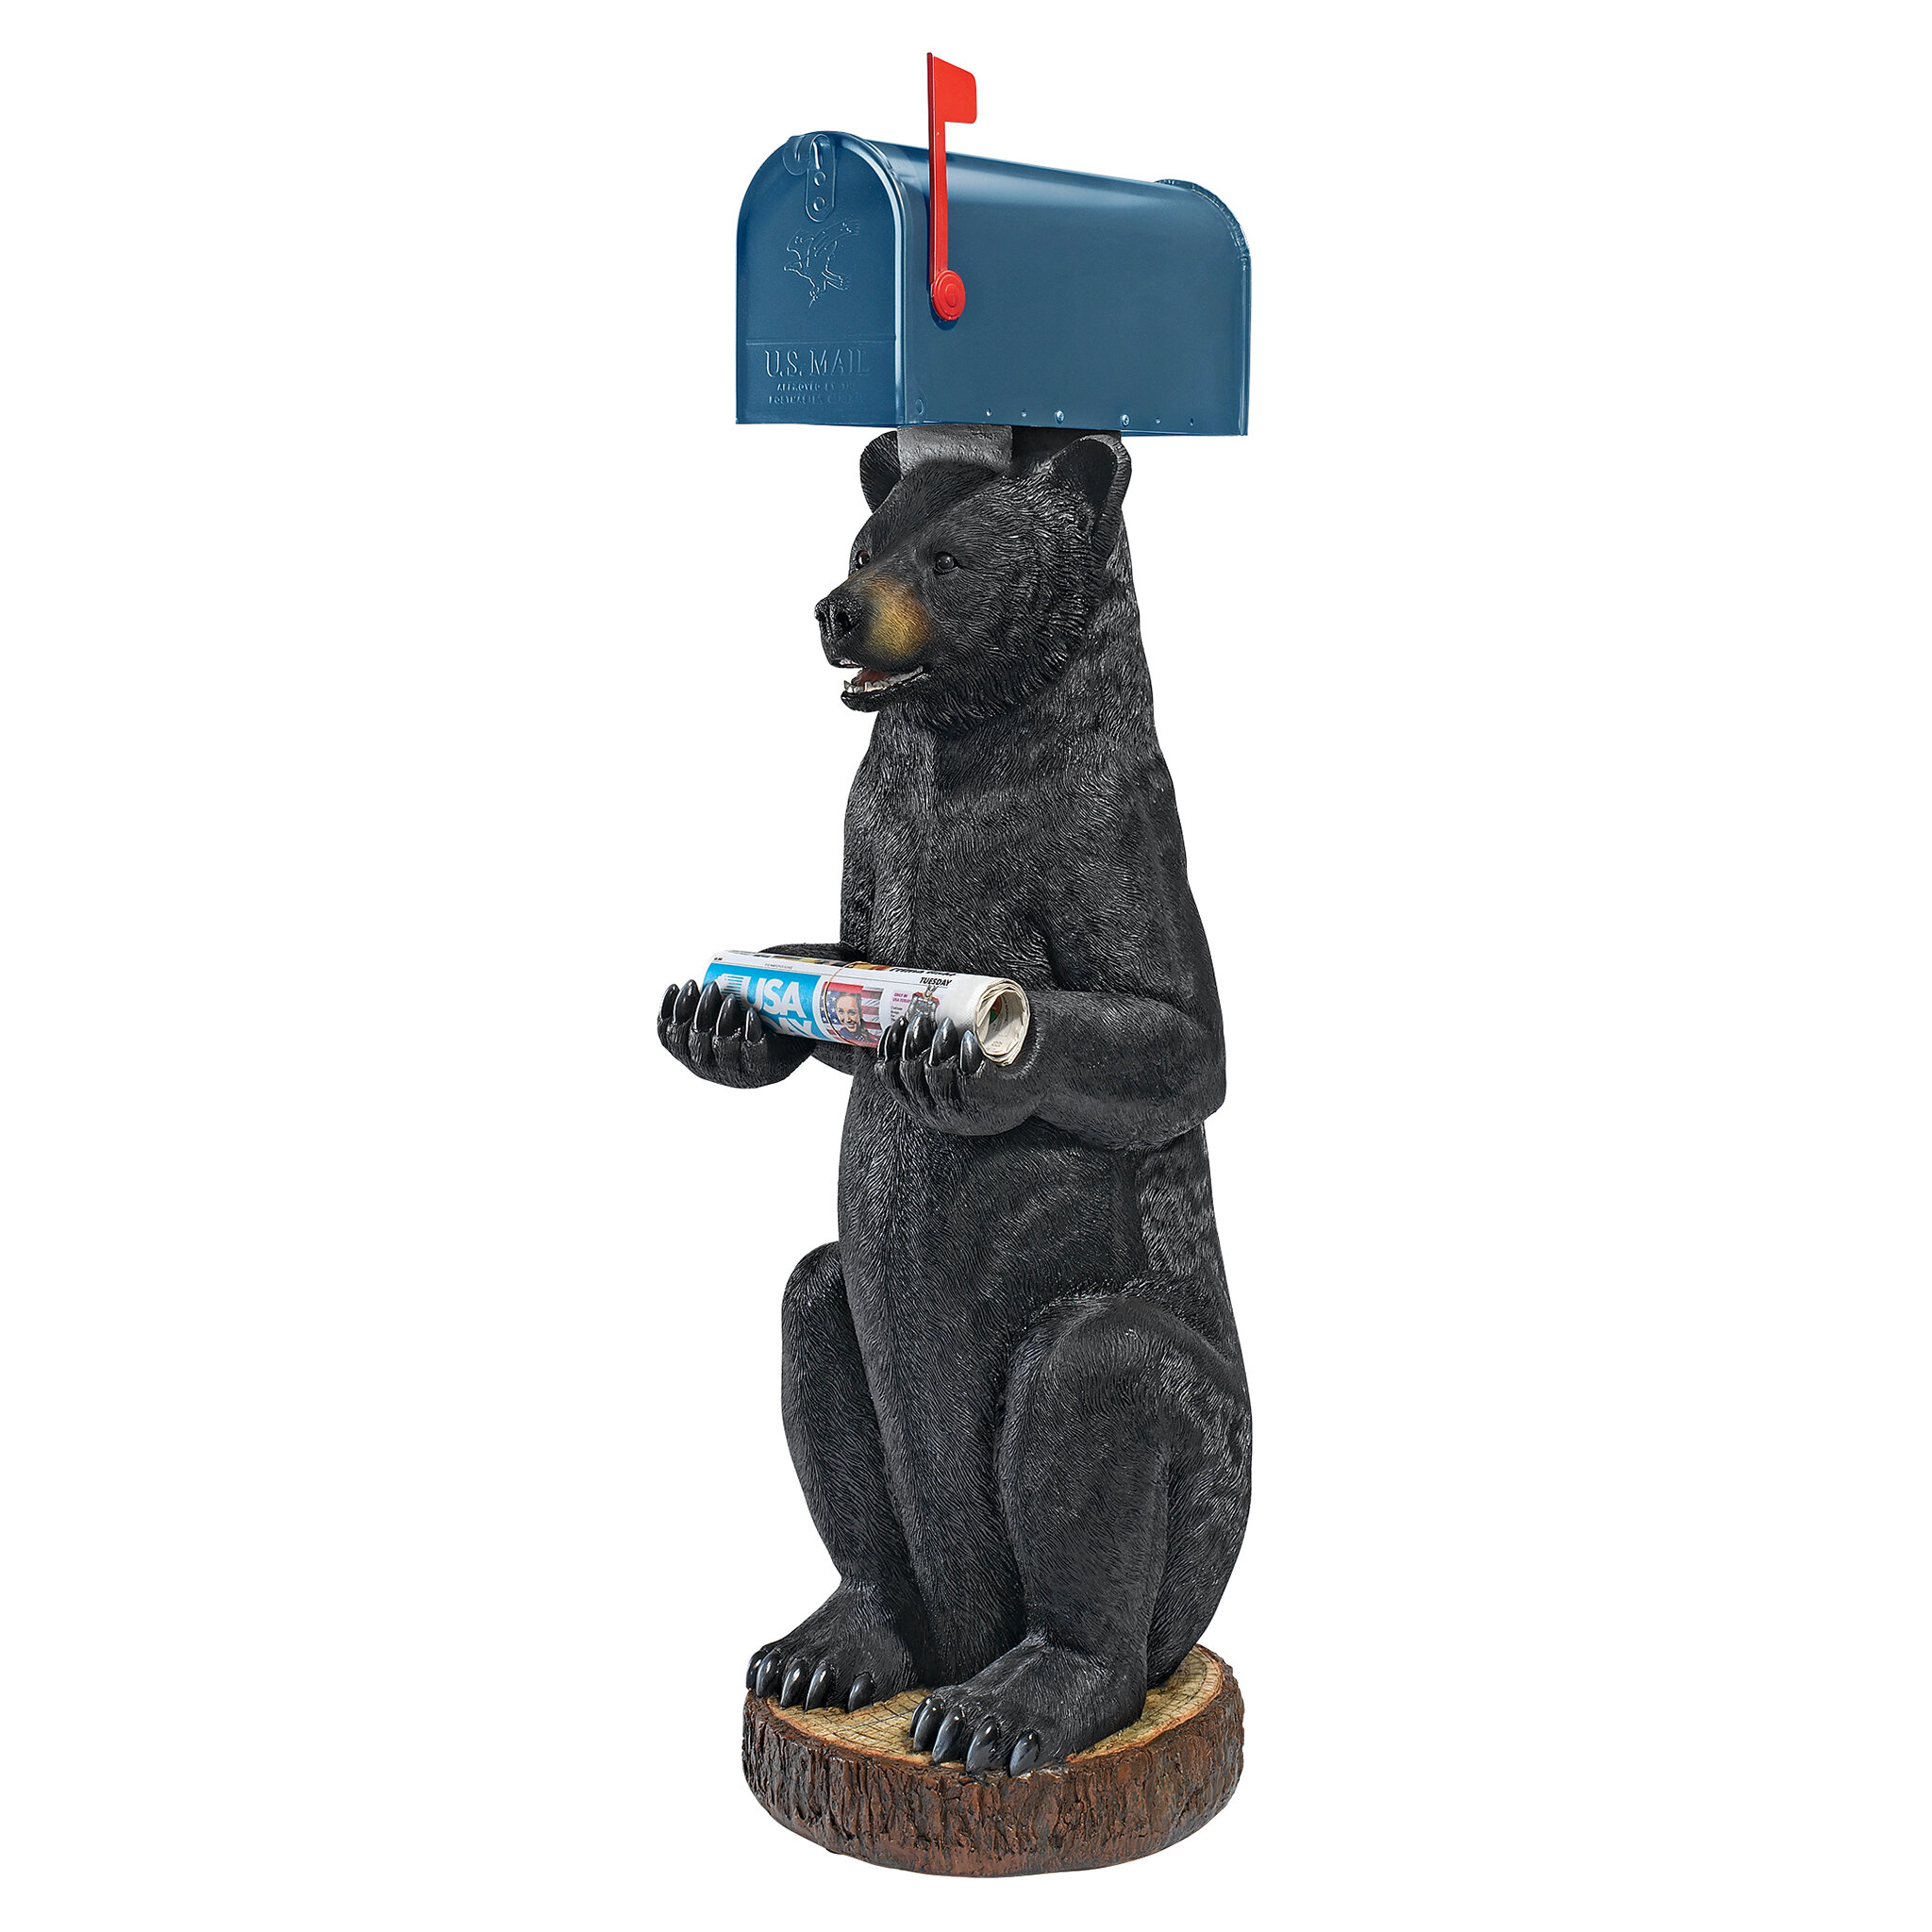 STEEL BLACK POWDER COAT FINISH ROTTWEILER  MAILBOX TOPPER YOUR  NAME